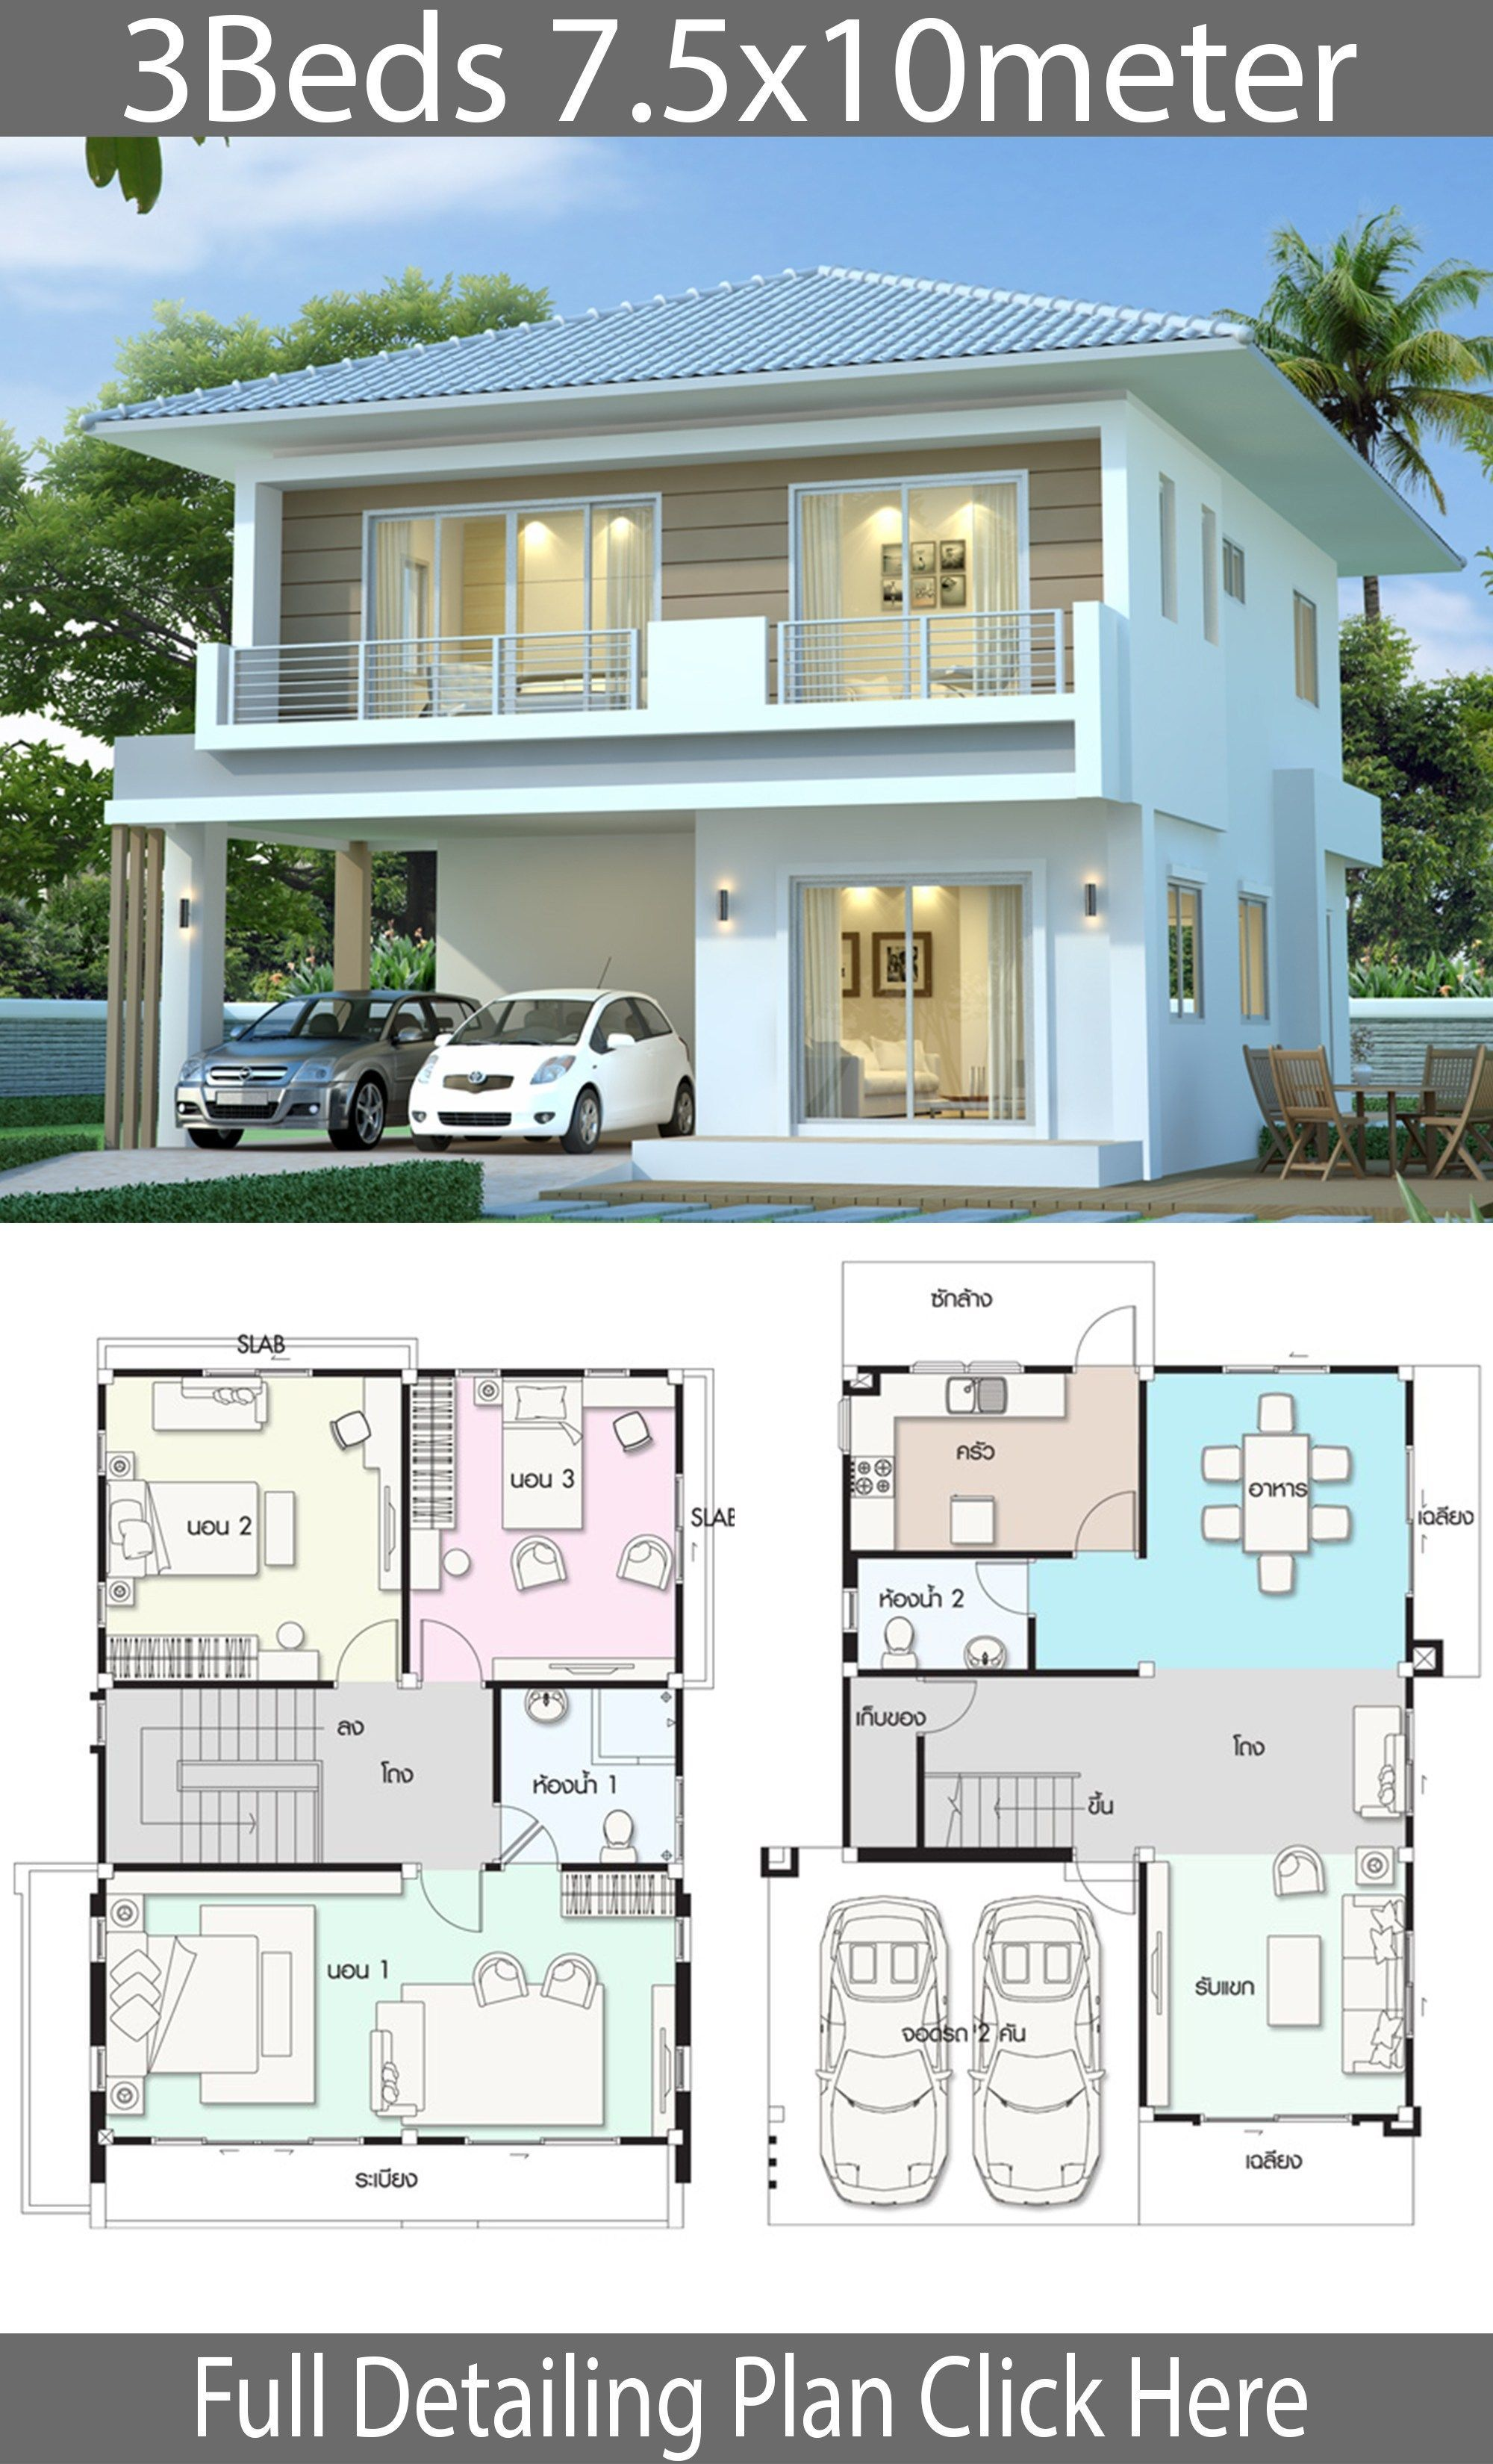 House Design Plan 16 5x10m With 5 Bedrooms House Design Plan 16 5x10m With 5 Bedroo In 2020 House Projects Architecture Sims House Plans Architectural House Plans